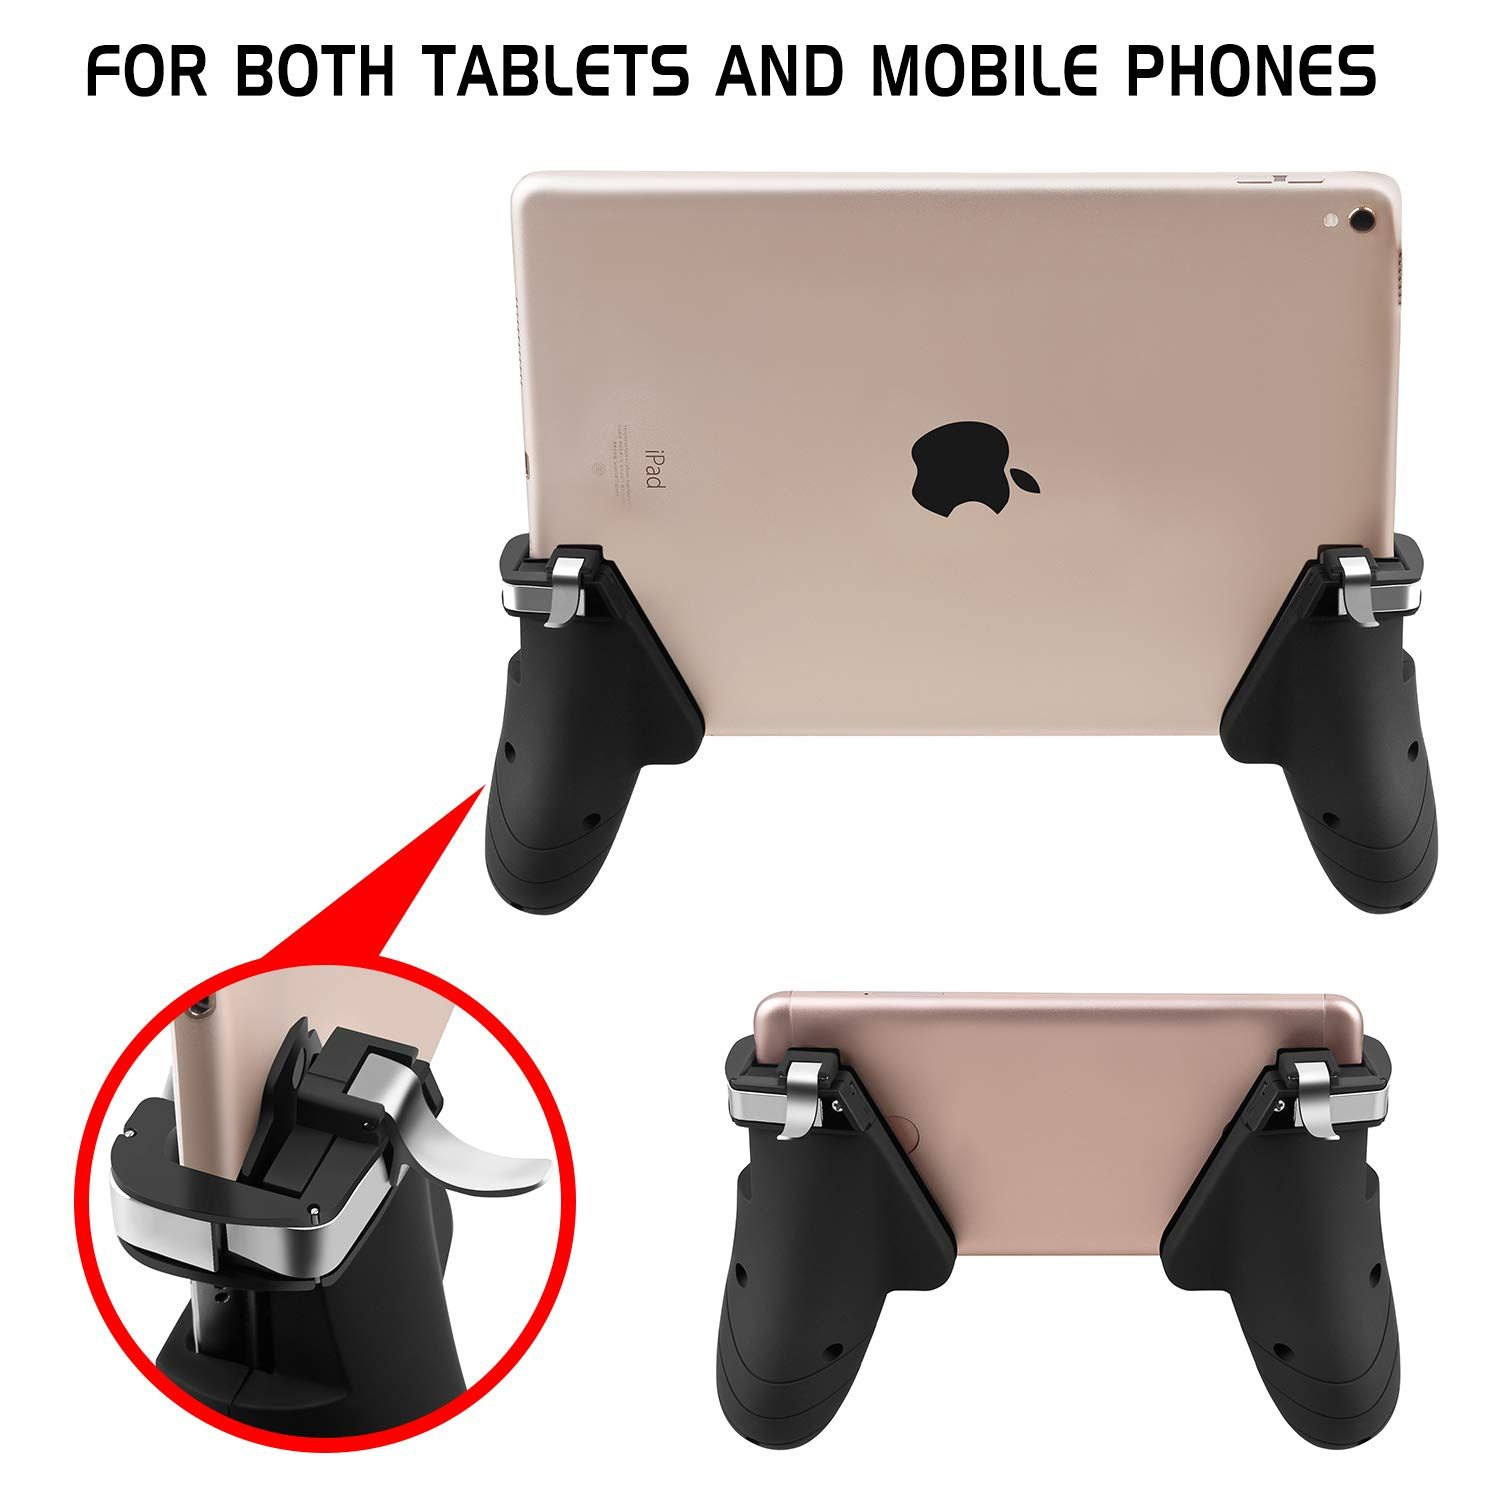 AnoKe Tablet Controller - Tablet Game Trigger/Mobile Gaming